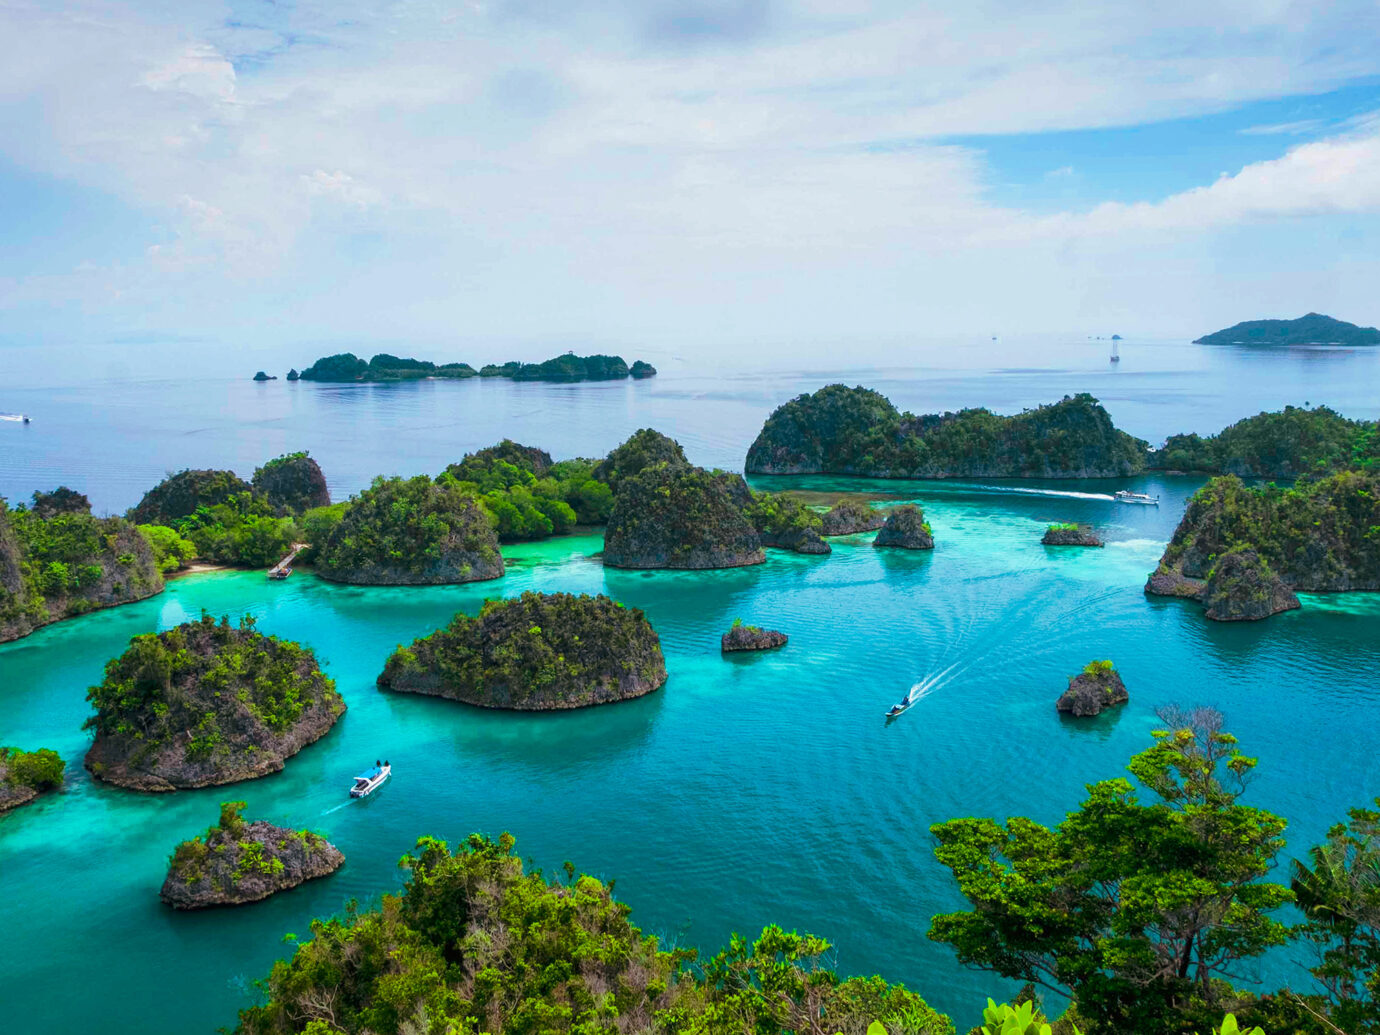 Marvelous view of Raja Ampat island, Indonesia